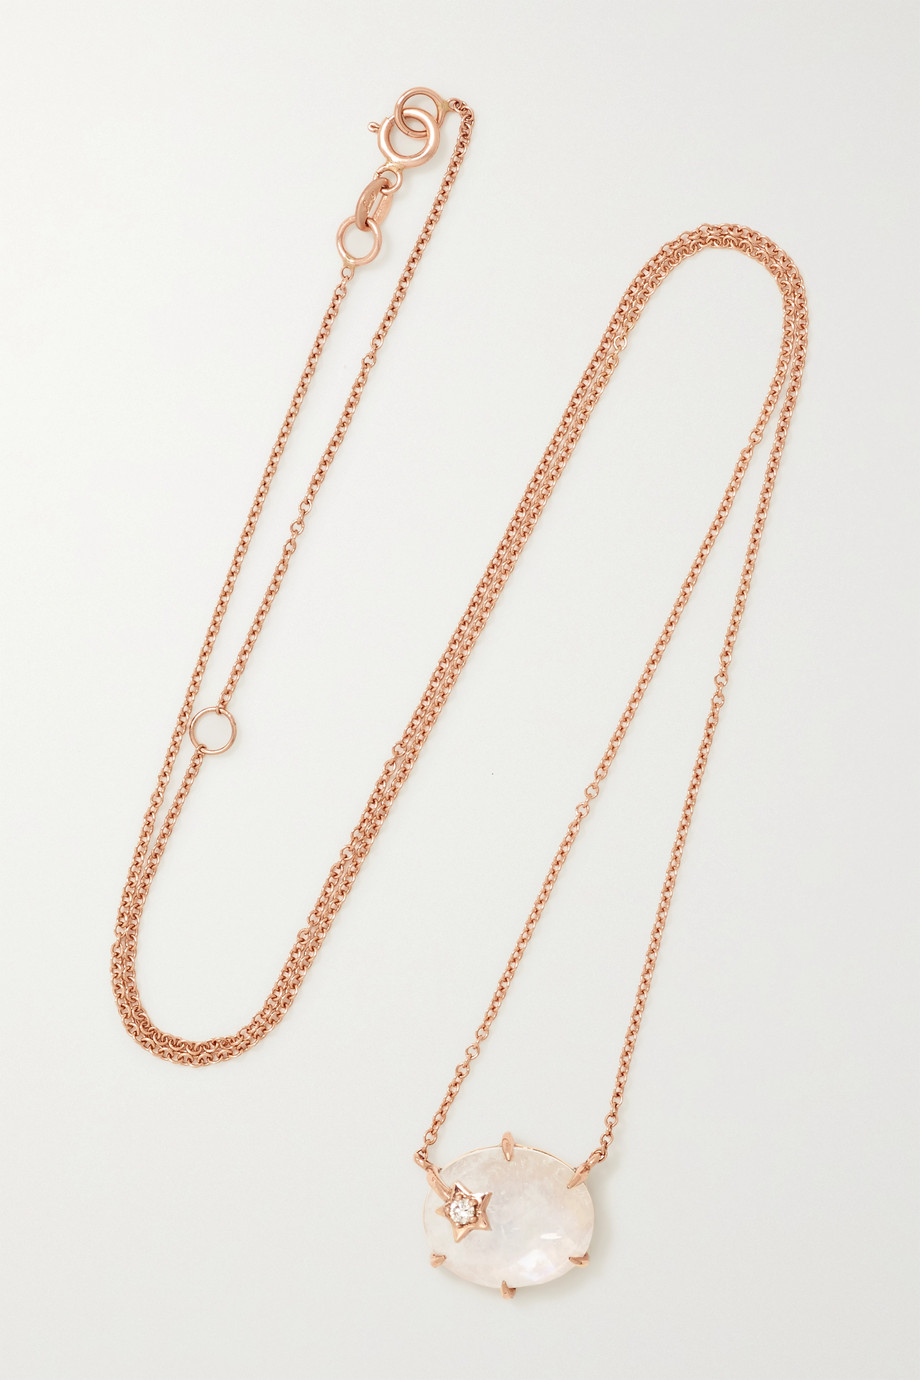 ANDREA FOHRMAN Mini Galaxy 14-karat rose gold, moonstone and diamond necklace